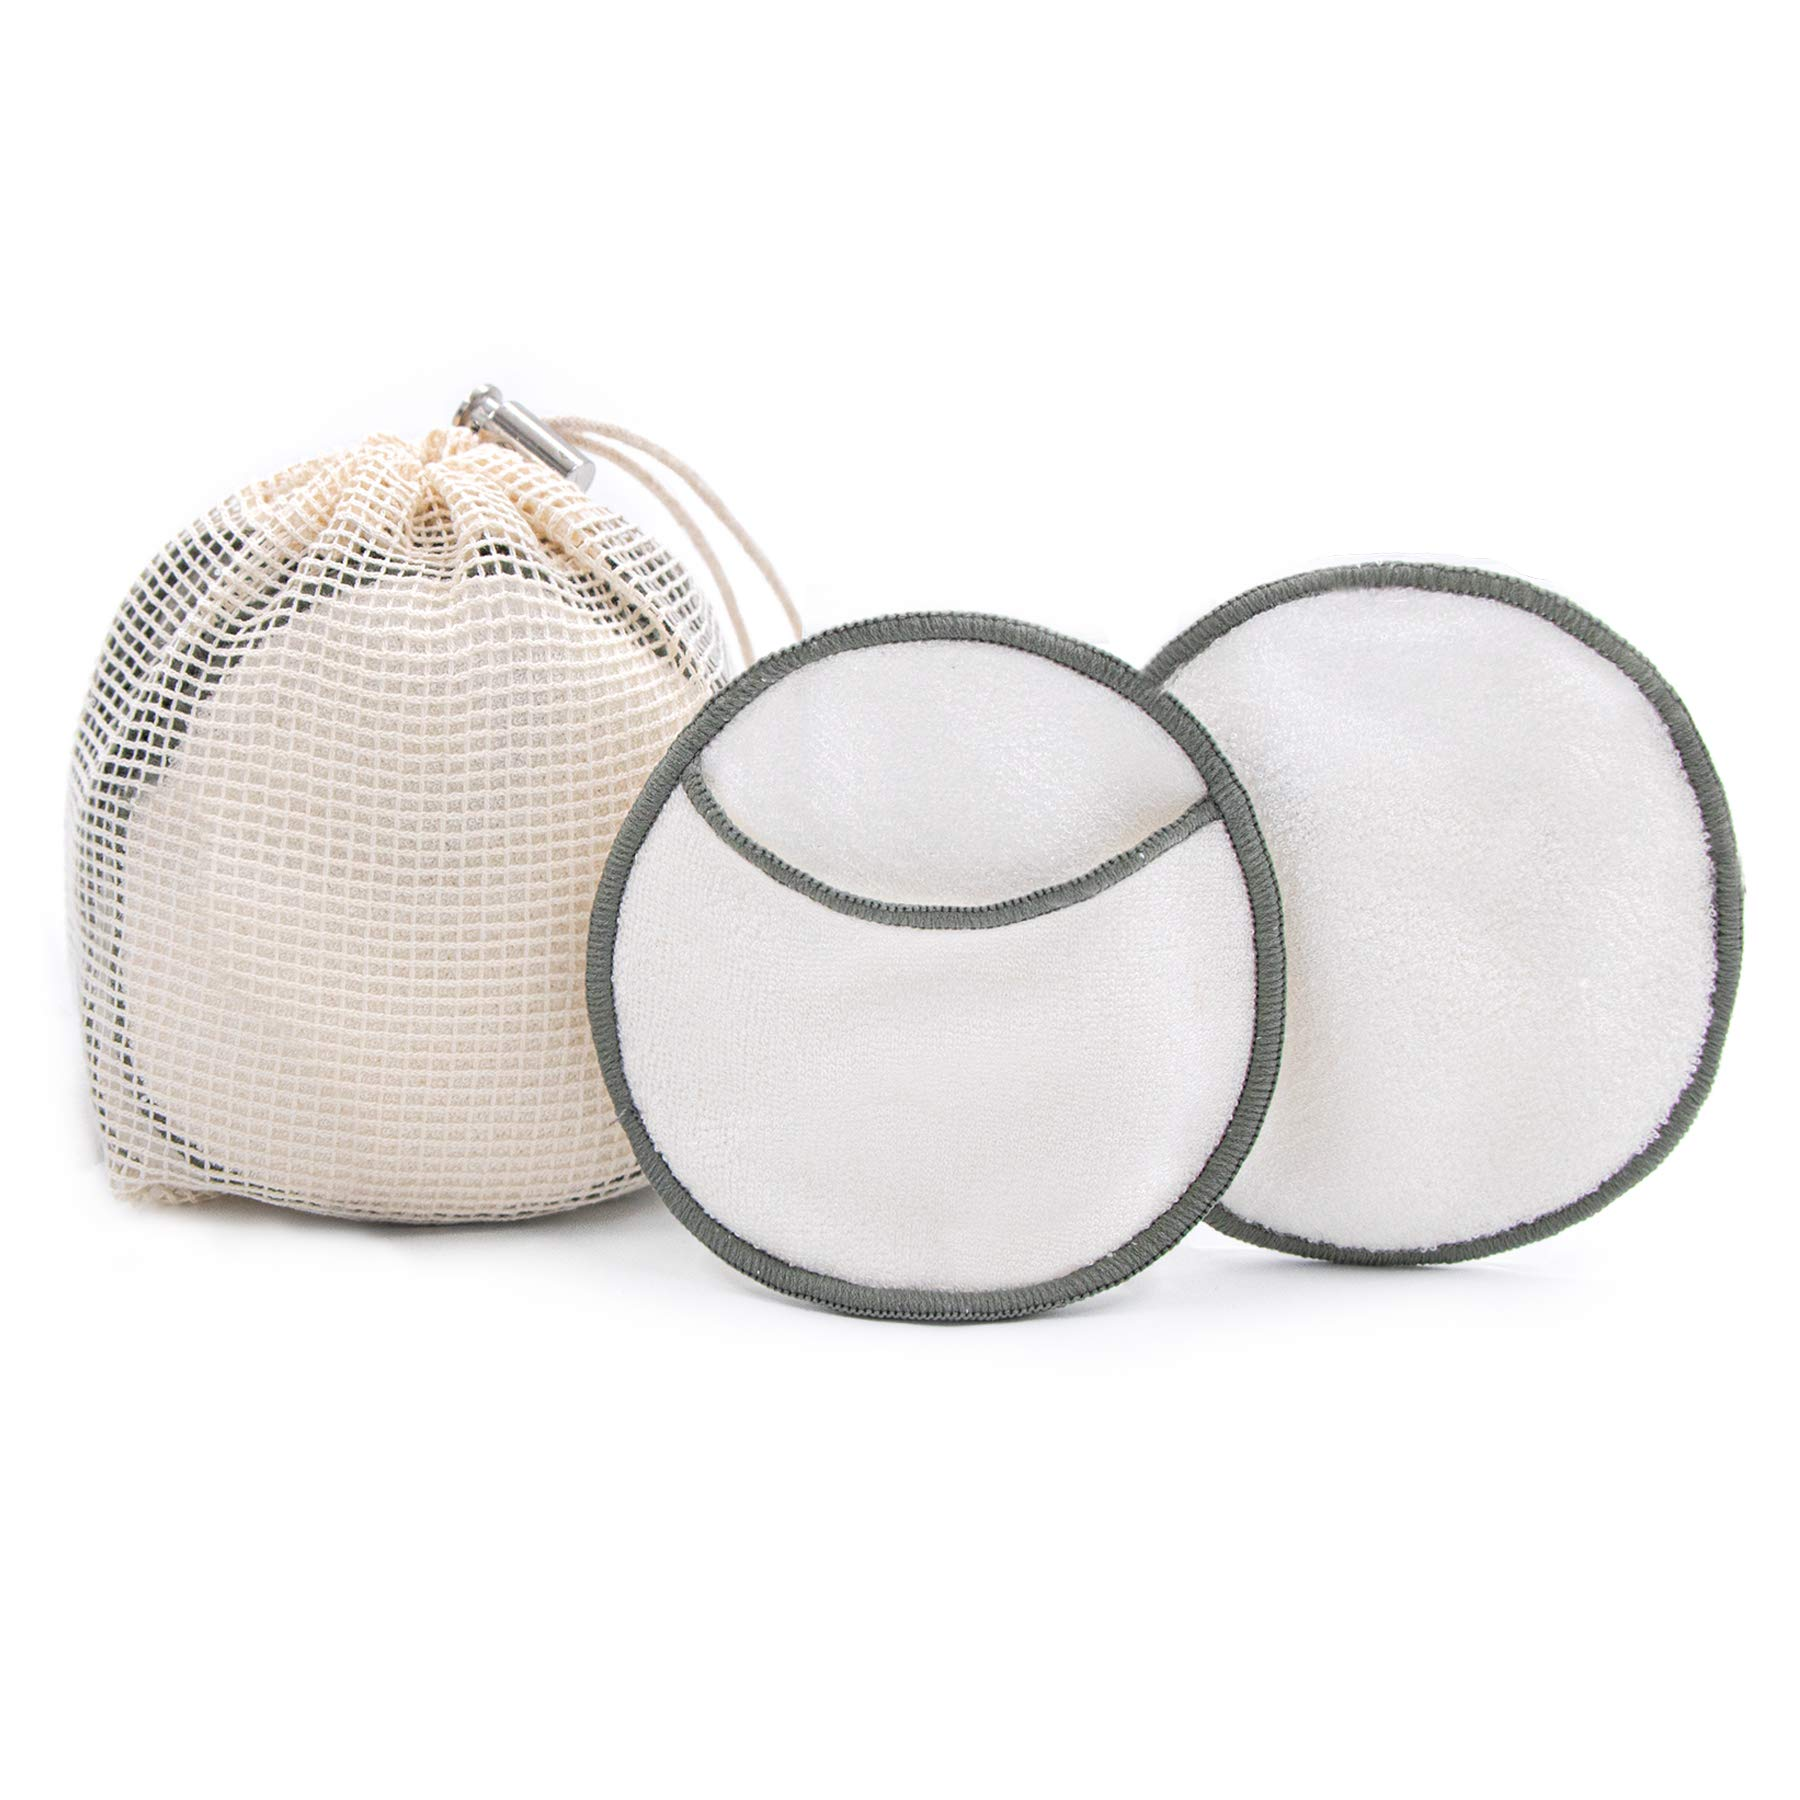 myHomeBody Reusable Makeup Remover Pads   Ultra-Soft and Gentle, Effective Makeup Wipes   Sustainable Bamboo Cotton Rounds 12 Piece Set with Laundry Bag